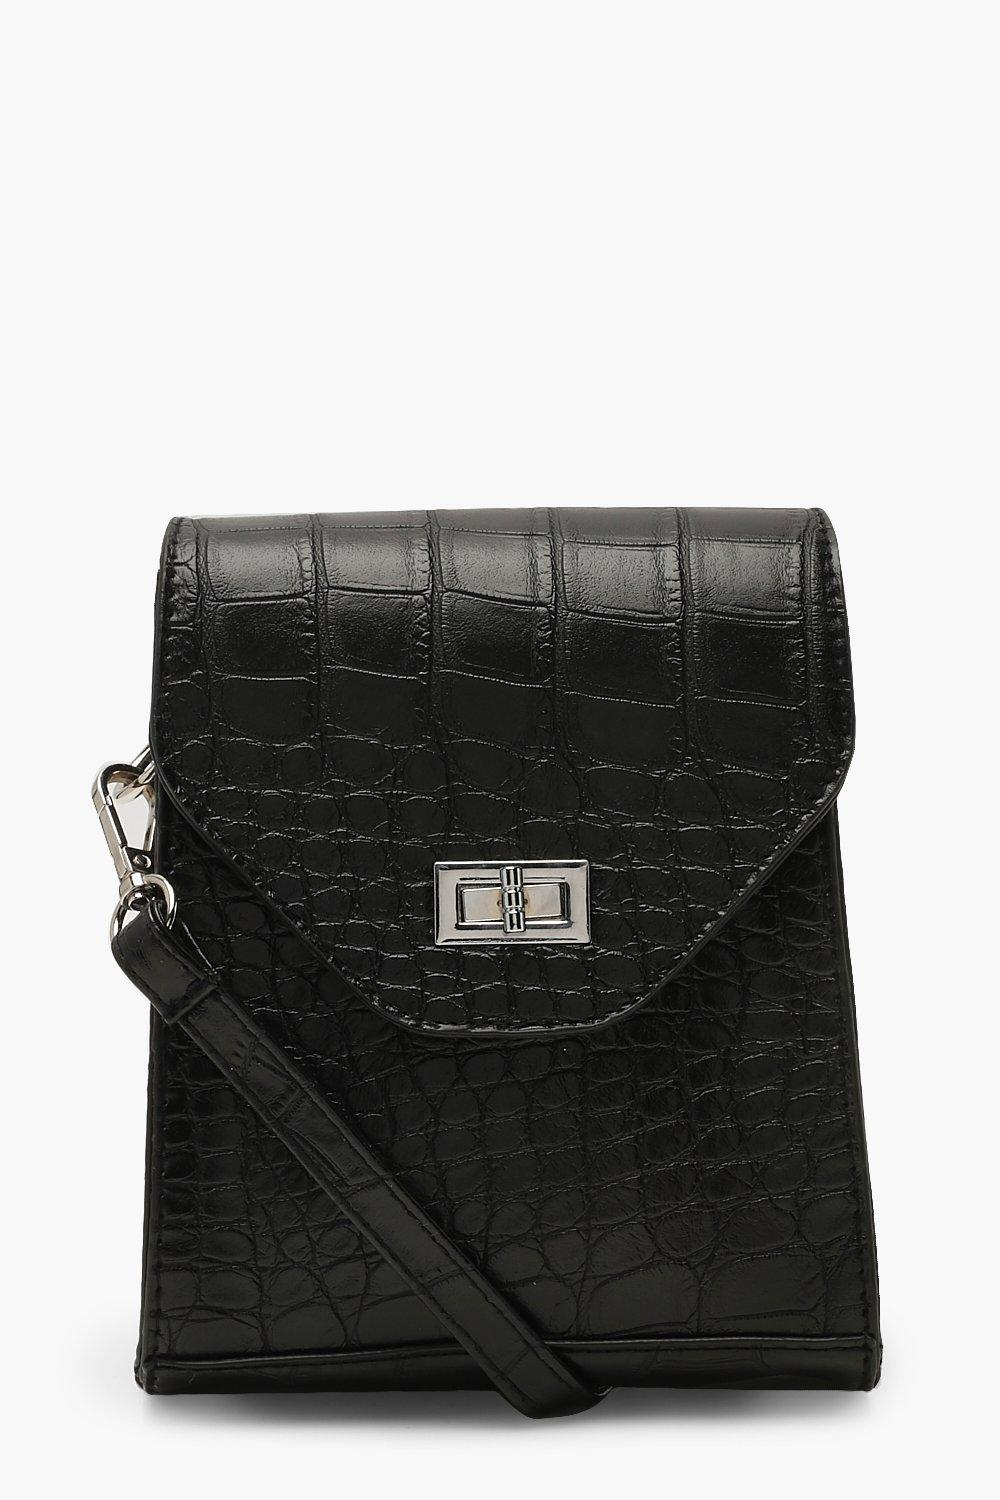 Croc & Lock Square Cross Body